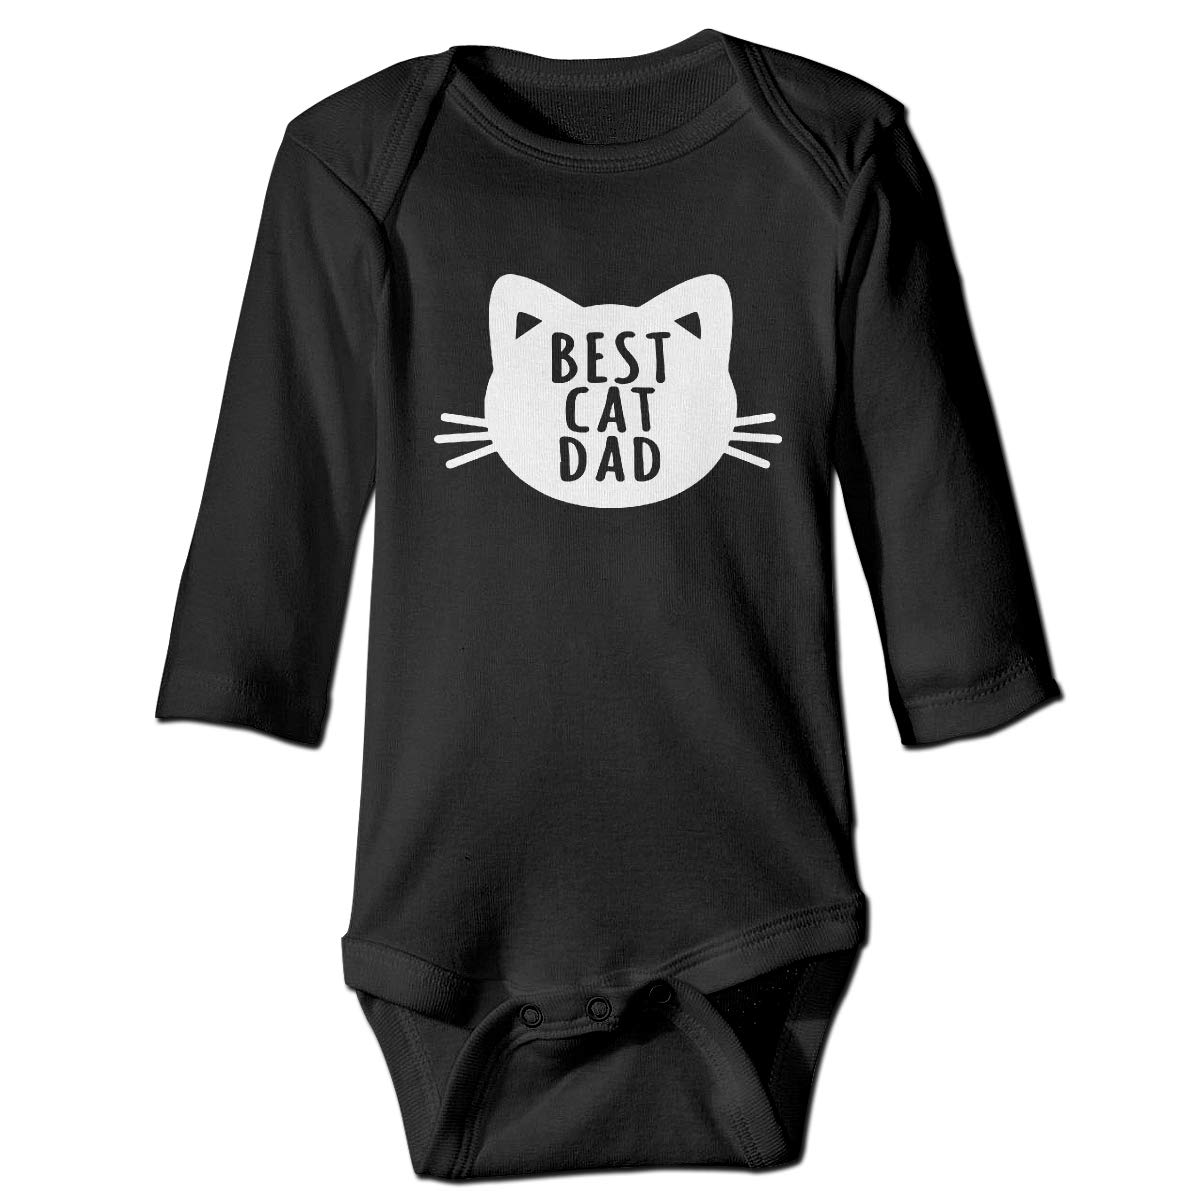 Suit 6-24 Months Toddler Best Cat Dad Long Sleeve Climbing Clothes Romper Jumpsuit